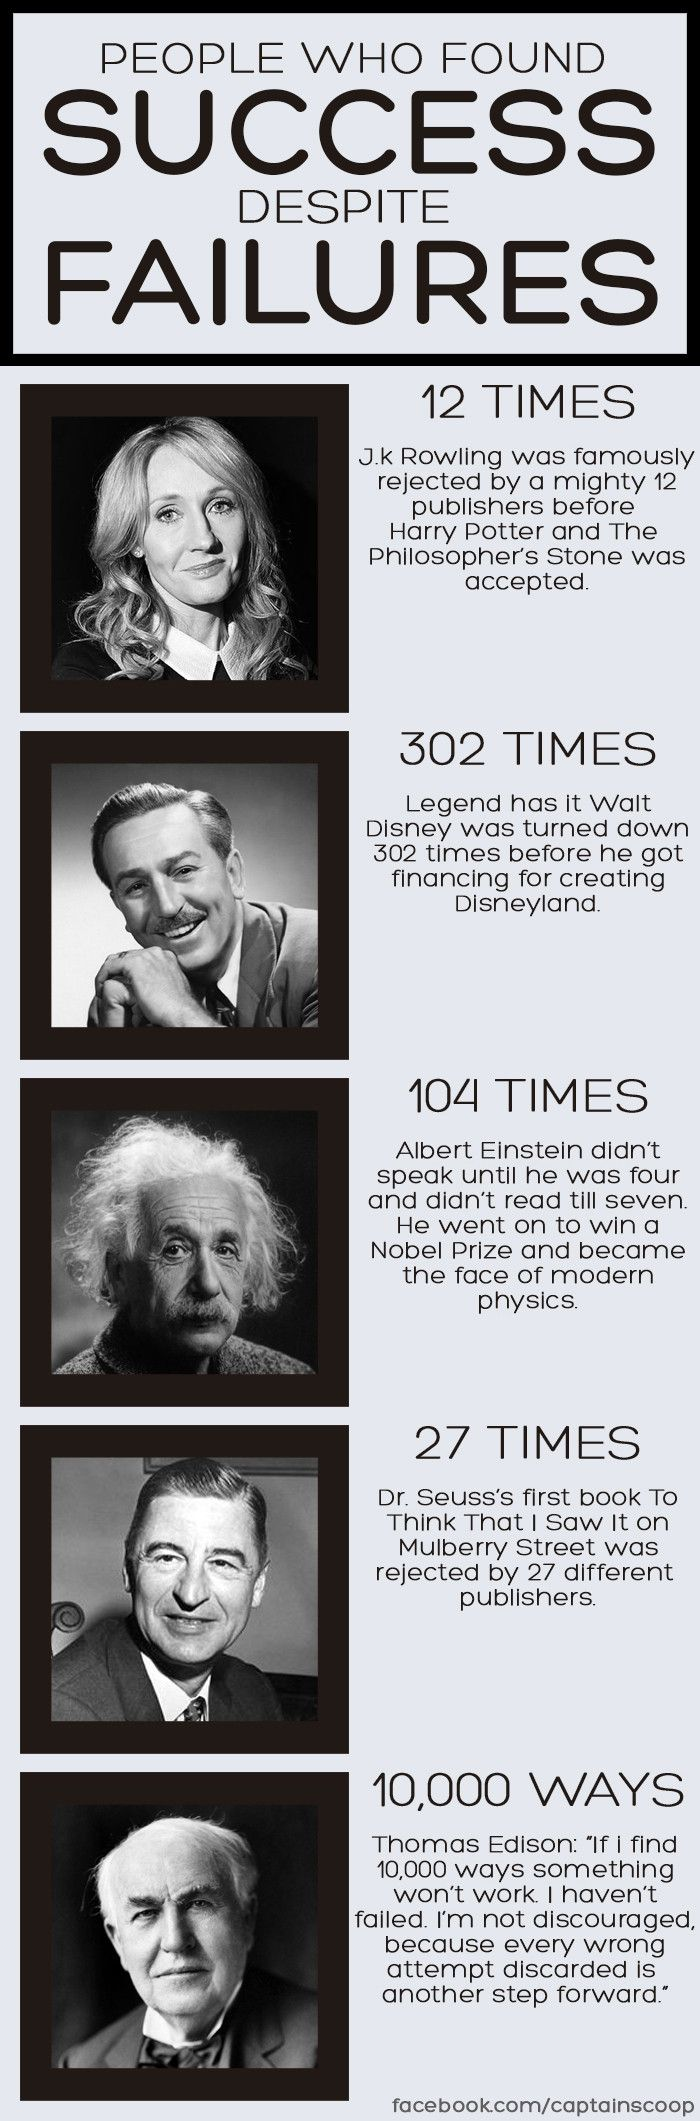 Famous people who have found success despite failing countless times.